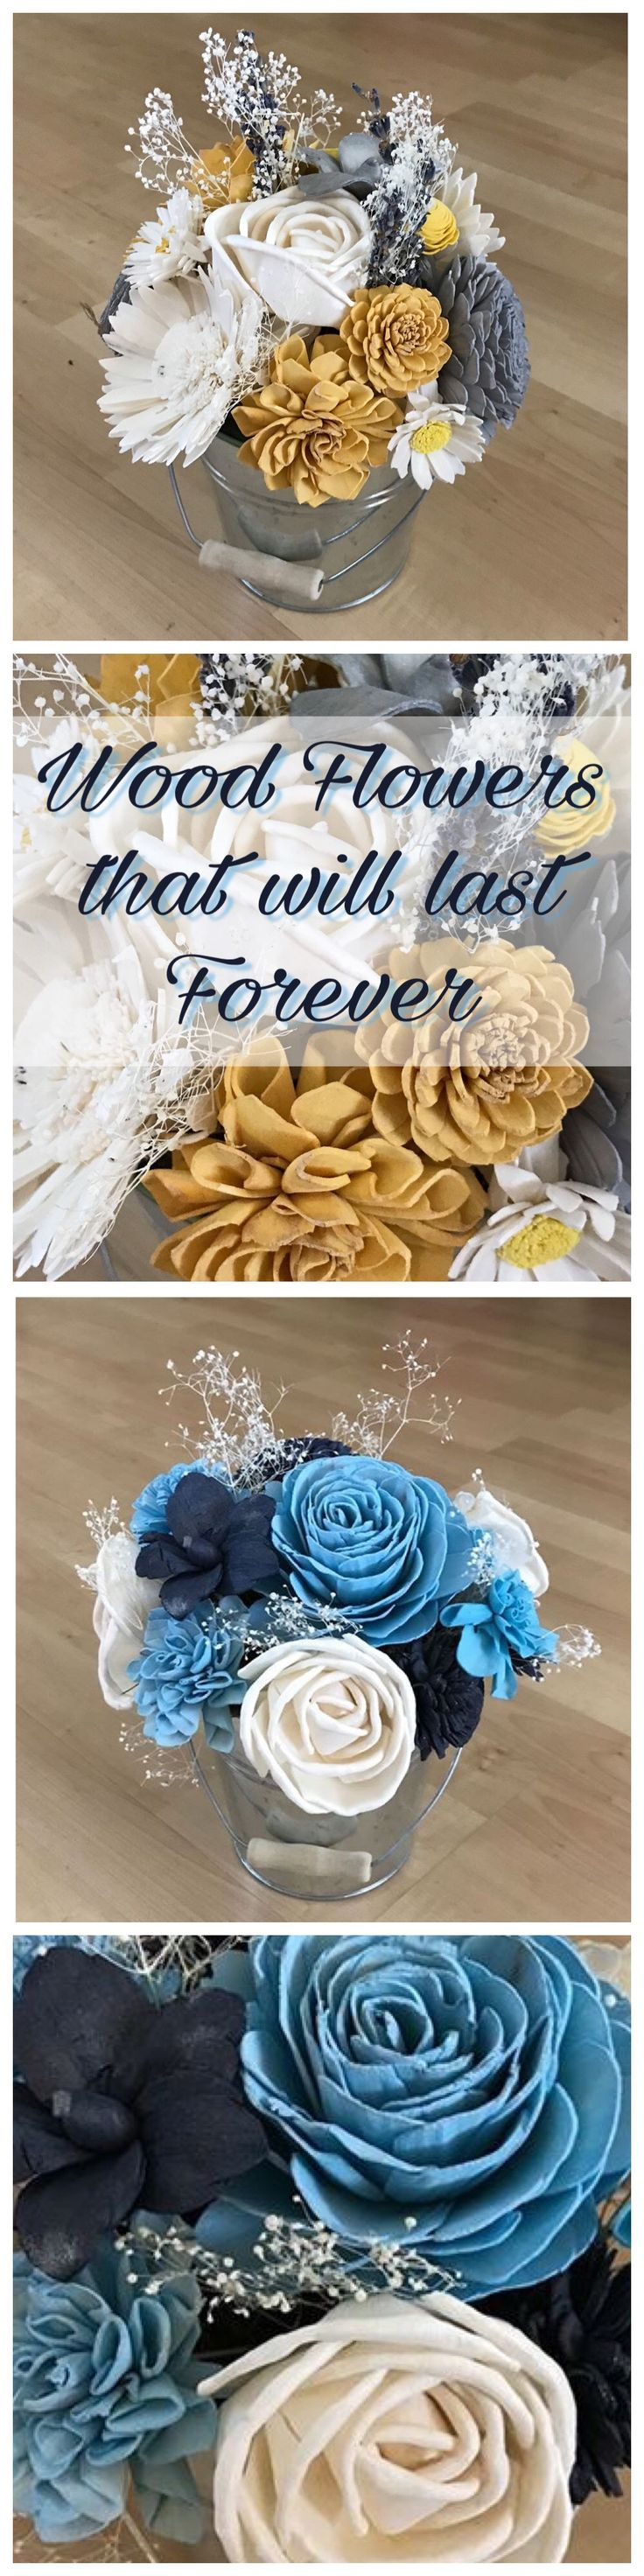 167 best sola wood flowers images on pinterest wood flowers wood flowers used for home decor wedding decor gifts and bouquets diy izmirmasajfo